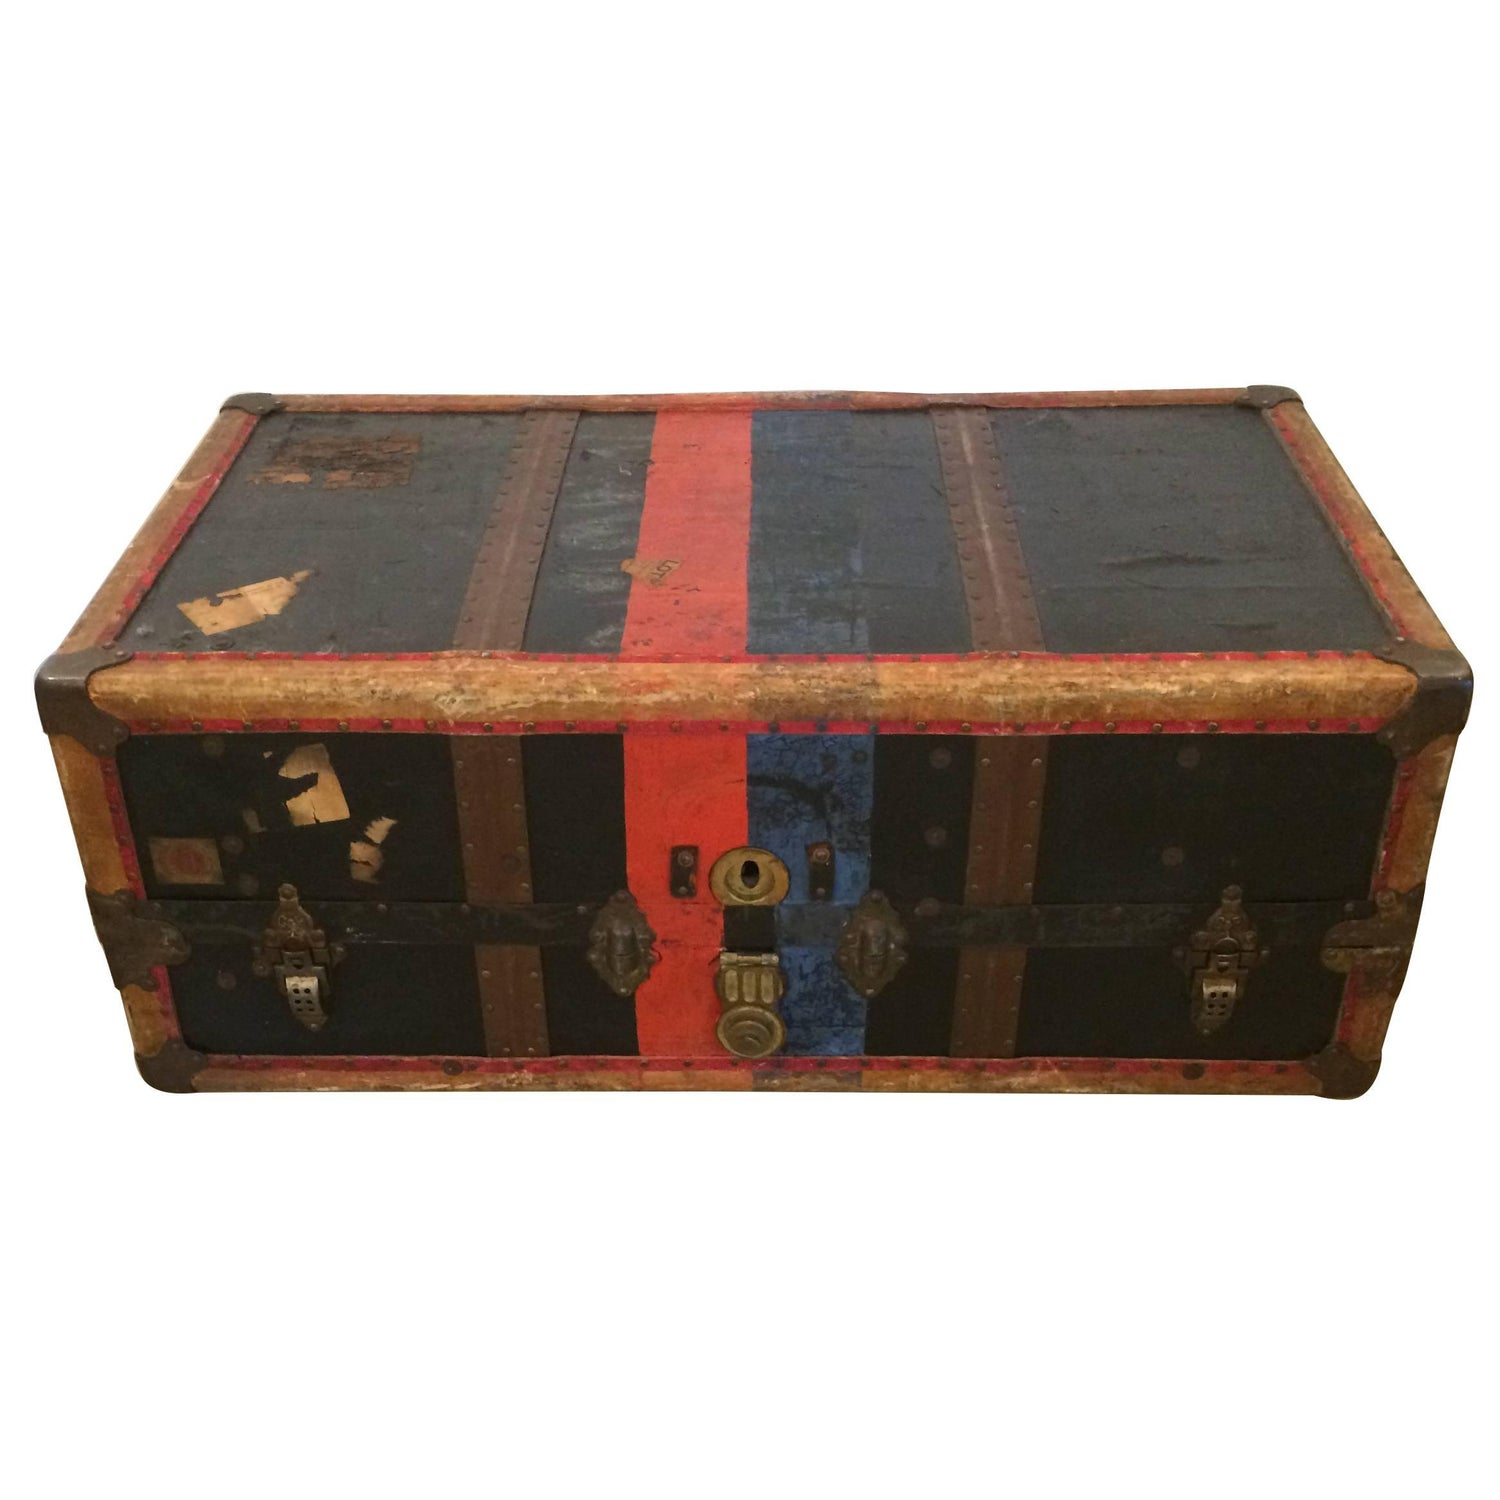 Incredible Crouch and Fitzgerald 19th Century Trunk Coffee Table